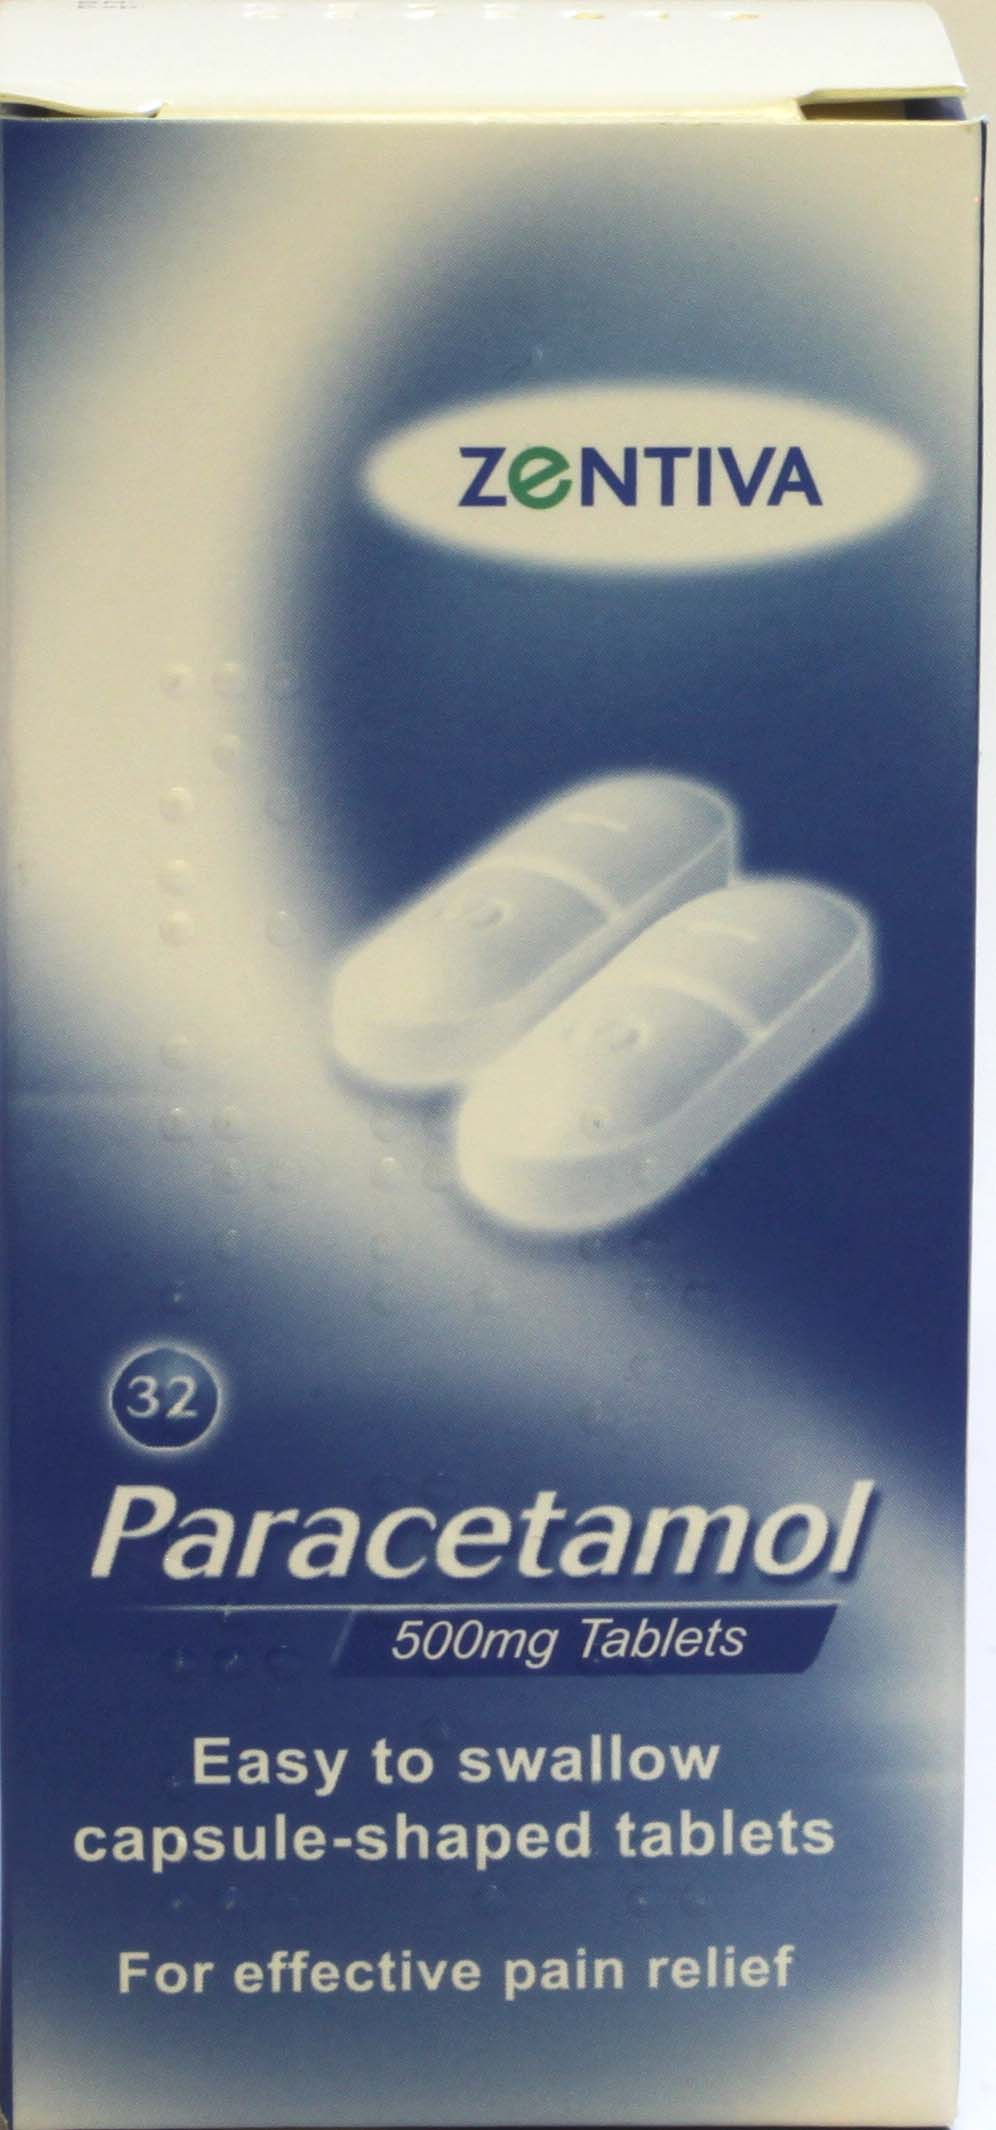 Zentiva Paracetamol 500mg Tablets 32